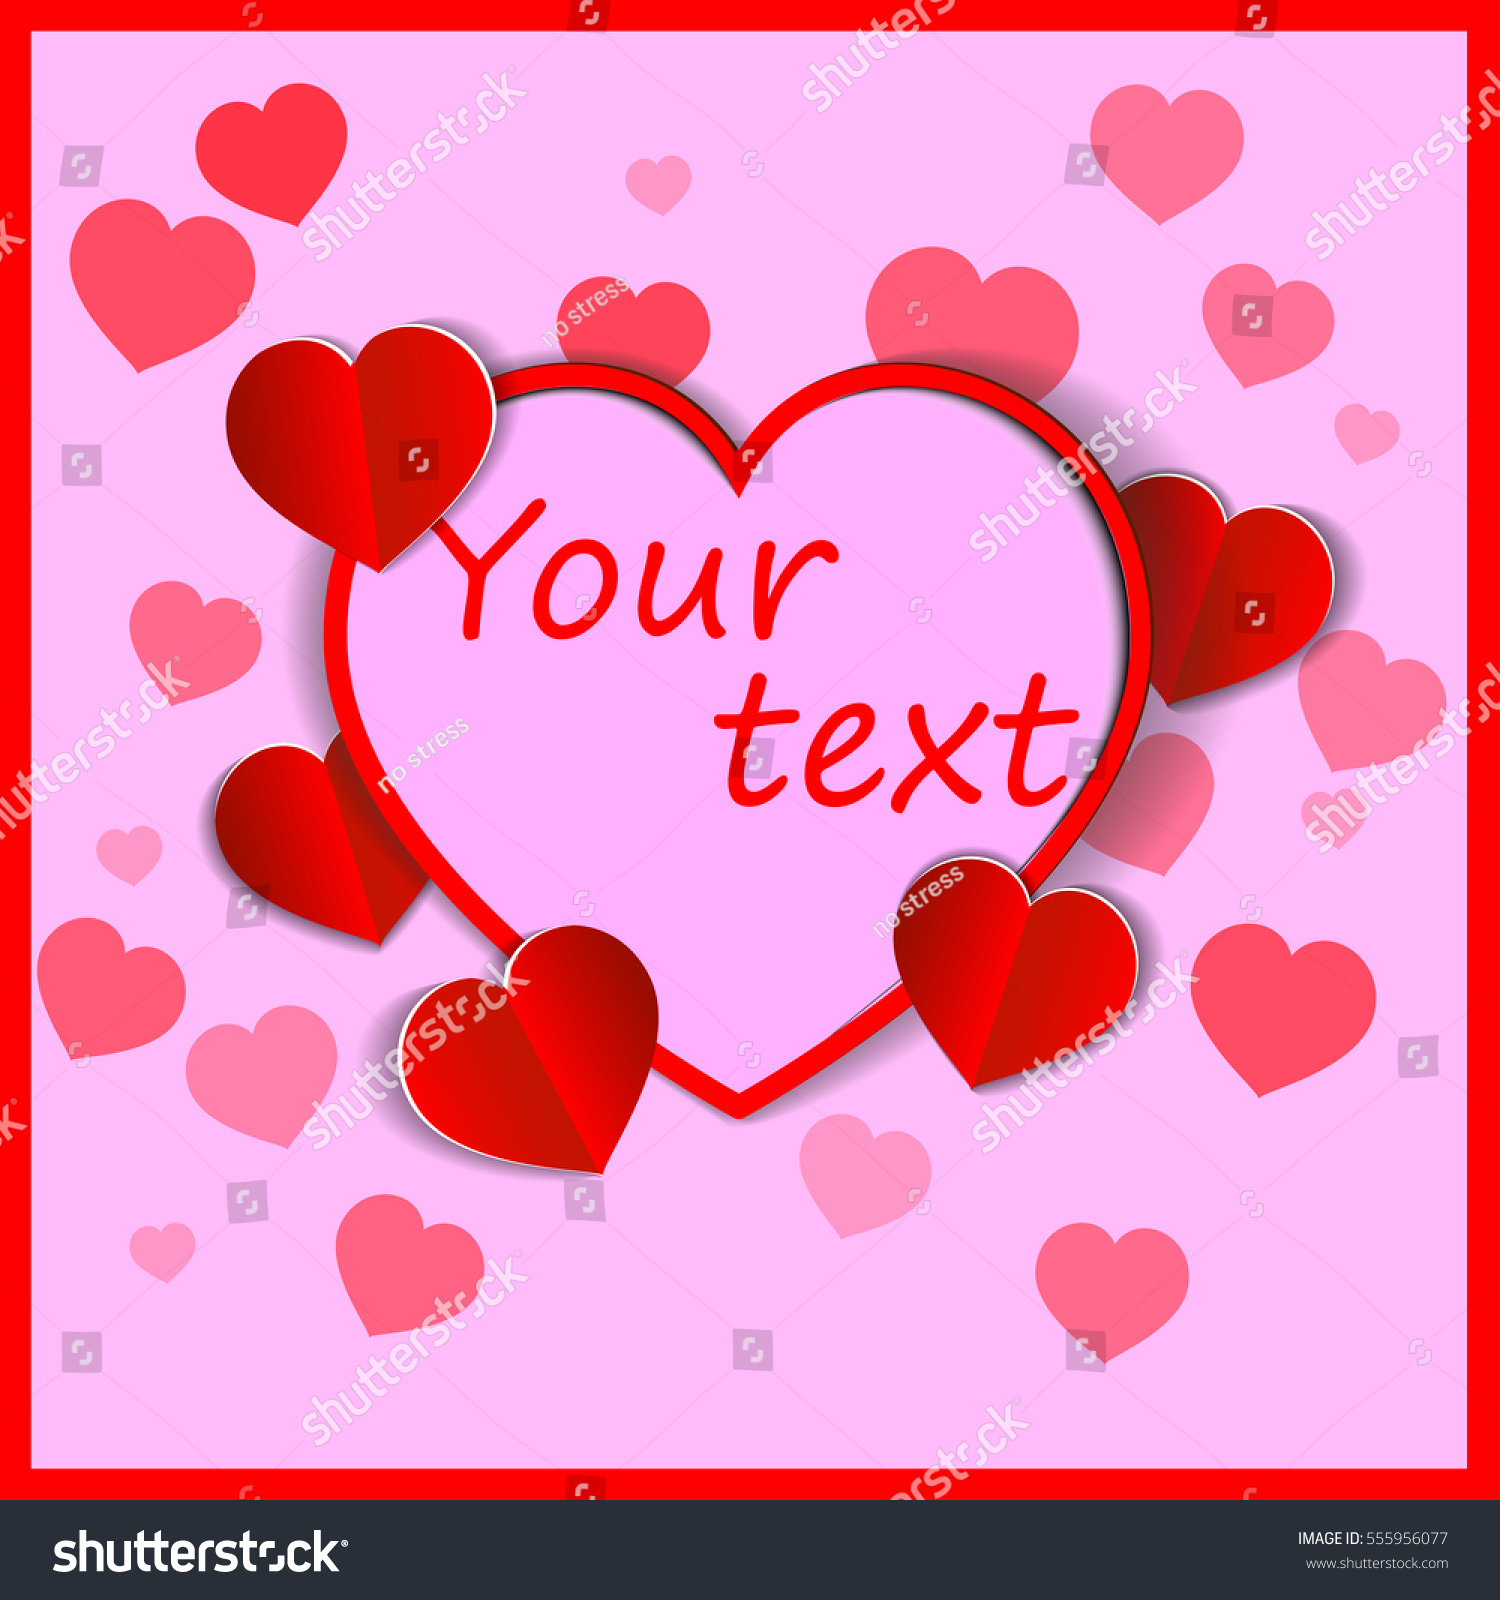 Valentines Day Cute Poster With Hearts And Text Vector Ez Canvas